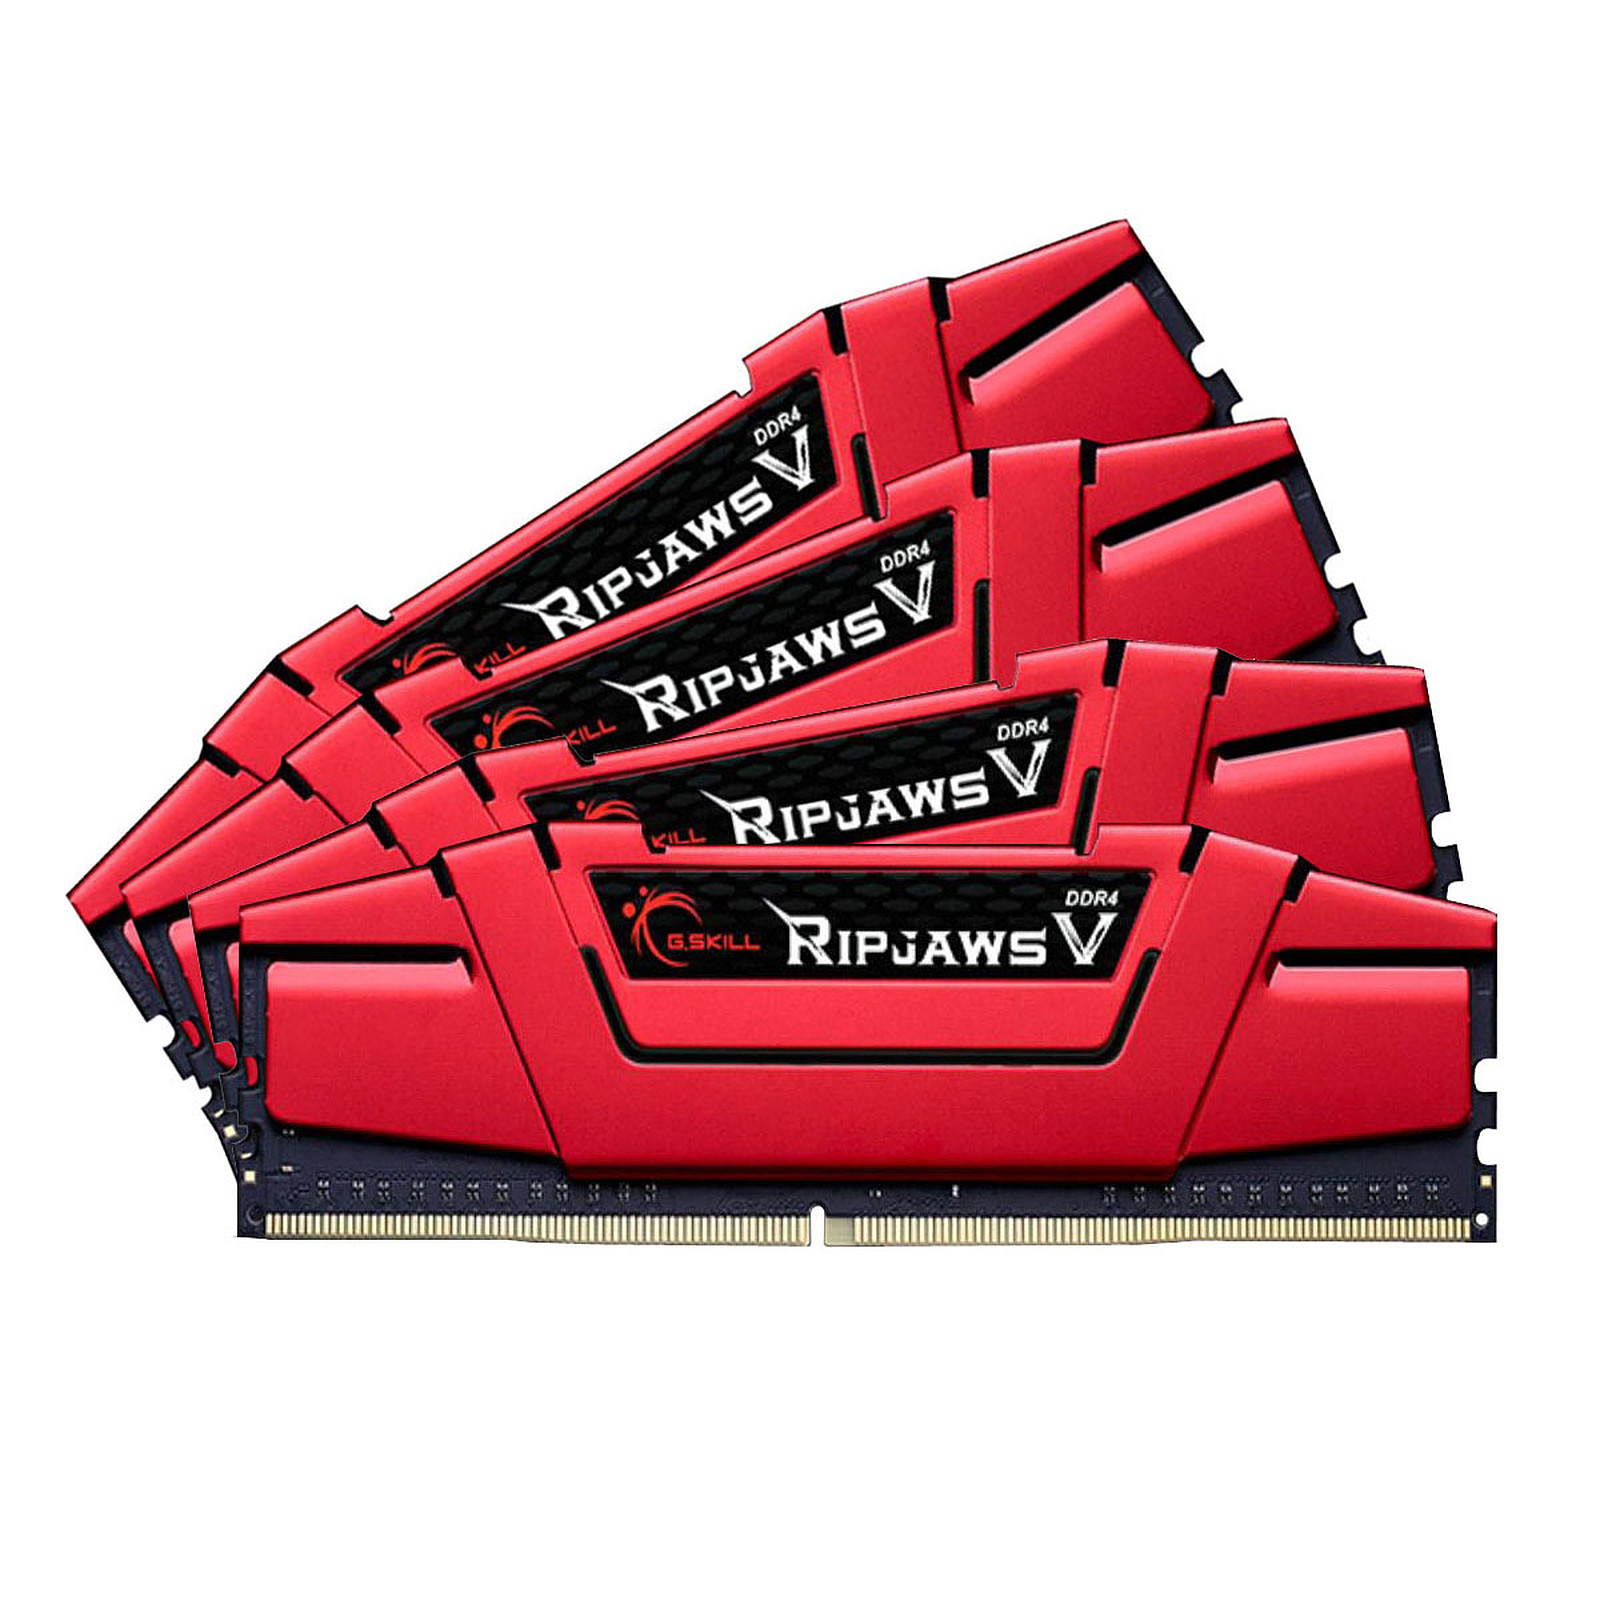 G.Skill RipJaws 5 Series Rouge 32 Go (4x 8 Go) DDR4 2133 MHz CL15